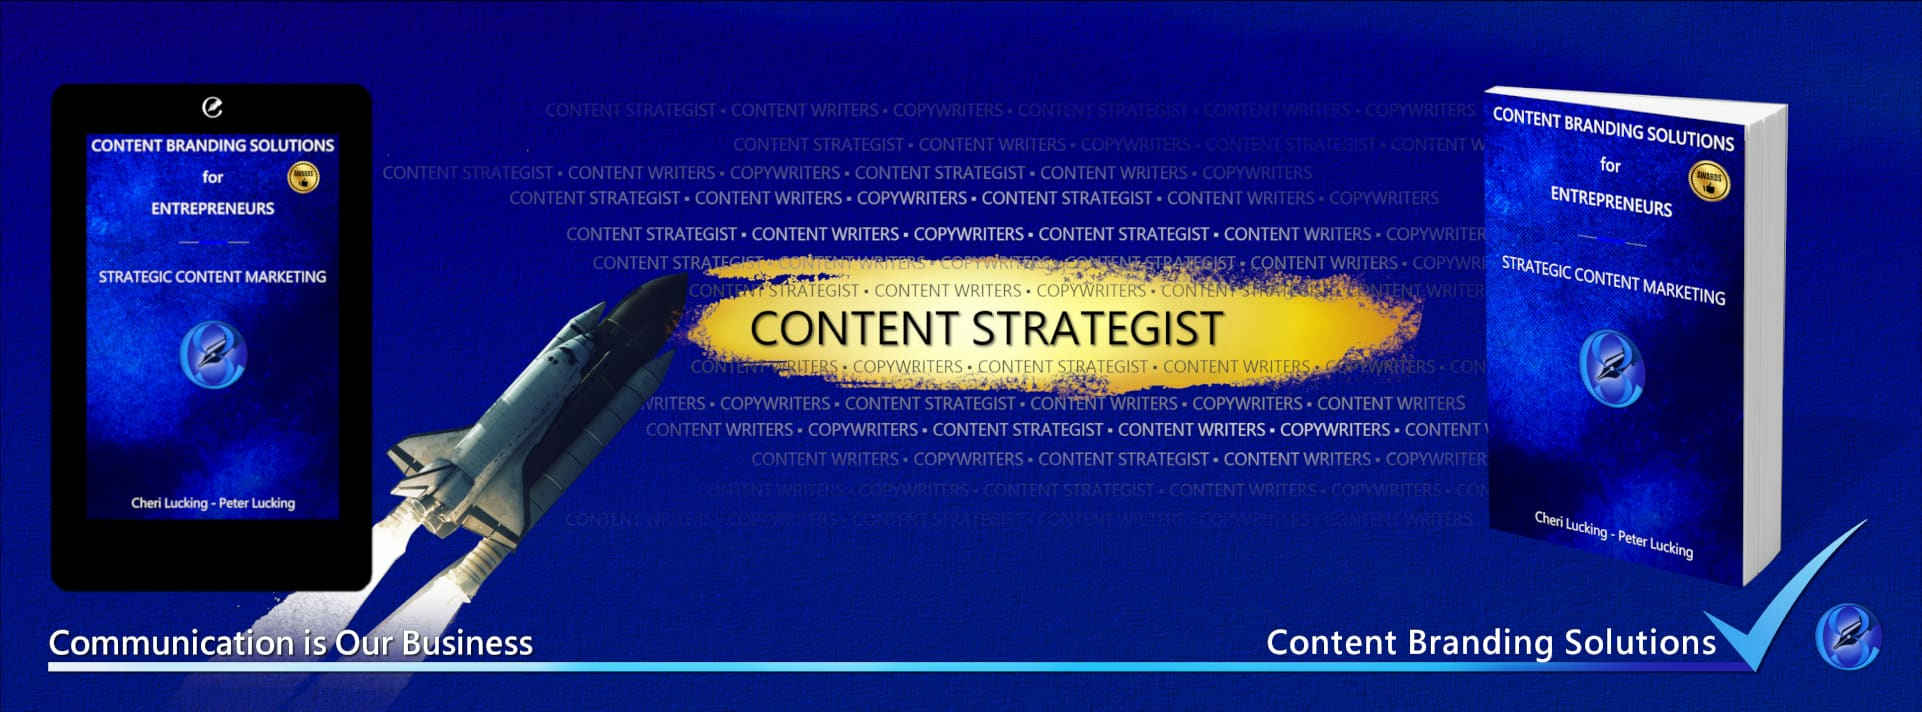 101 MARKETING STRATEGIES A FREE MARKETING WEBINAR IS PRESENTED BY CONTENT BRANDING SOLUTIONS for ENTREPRENEURS - Strategic Content Marketing by Peter Lucking and Cheri Lucking Content Strategists for Content Branding Solutions, Denver, Colorado